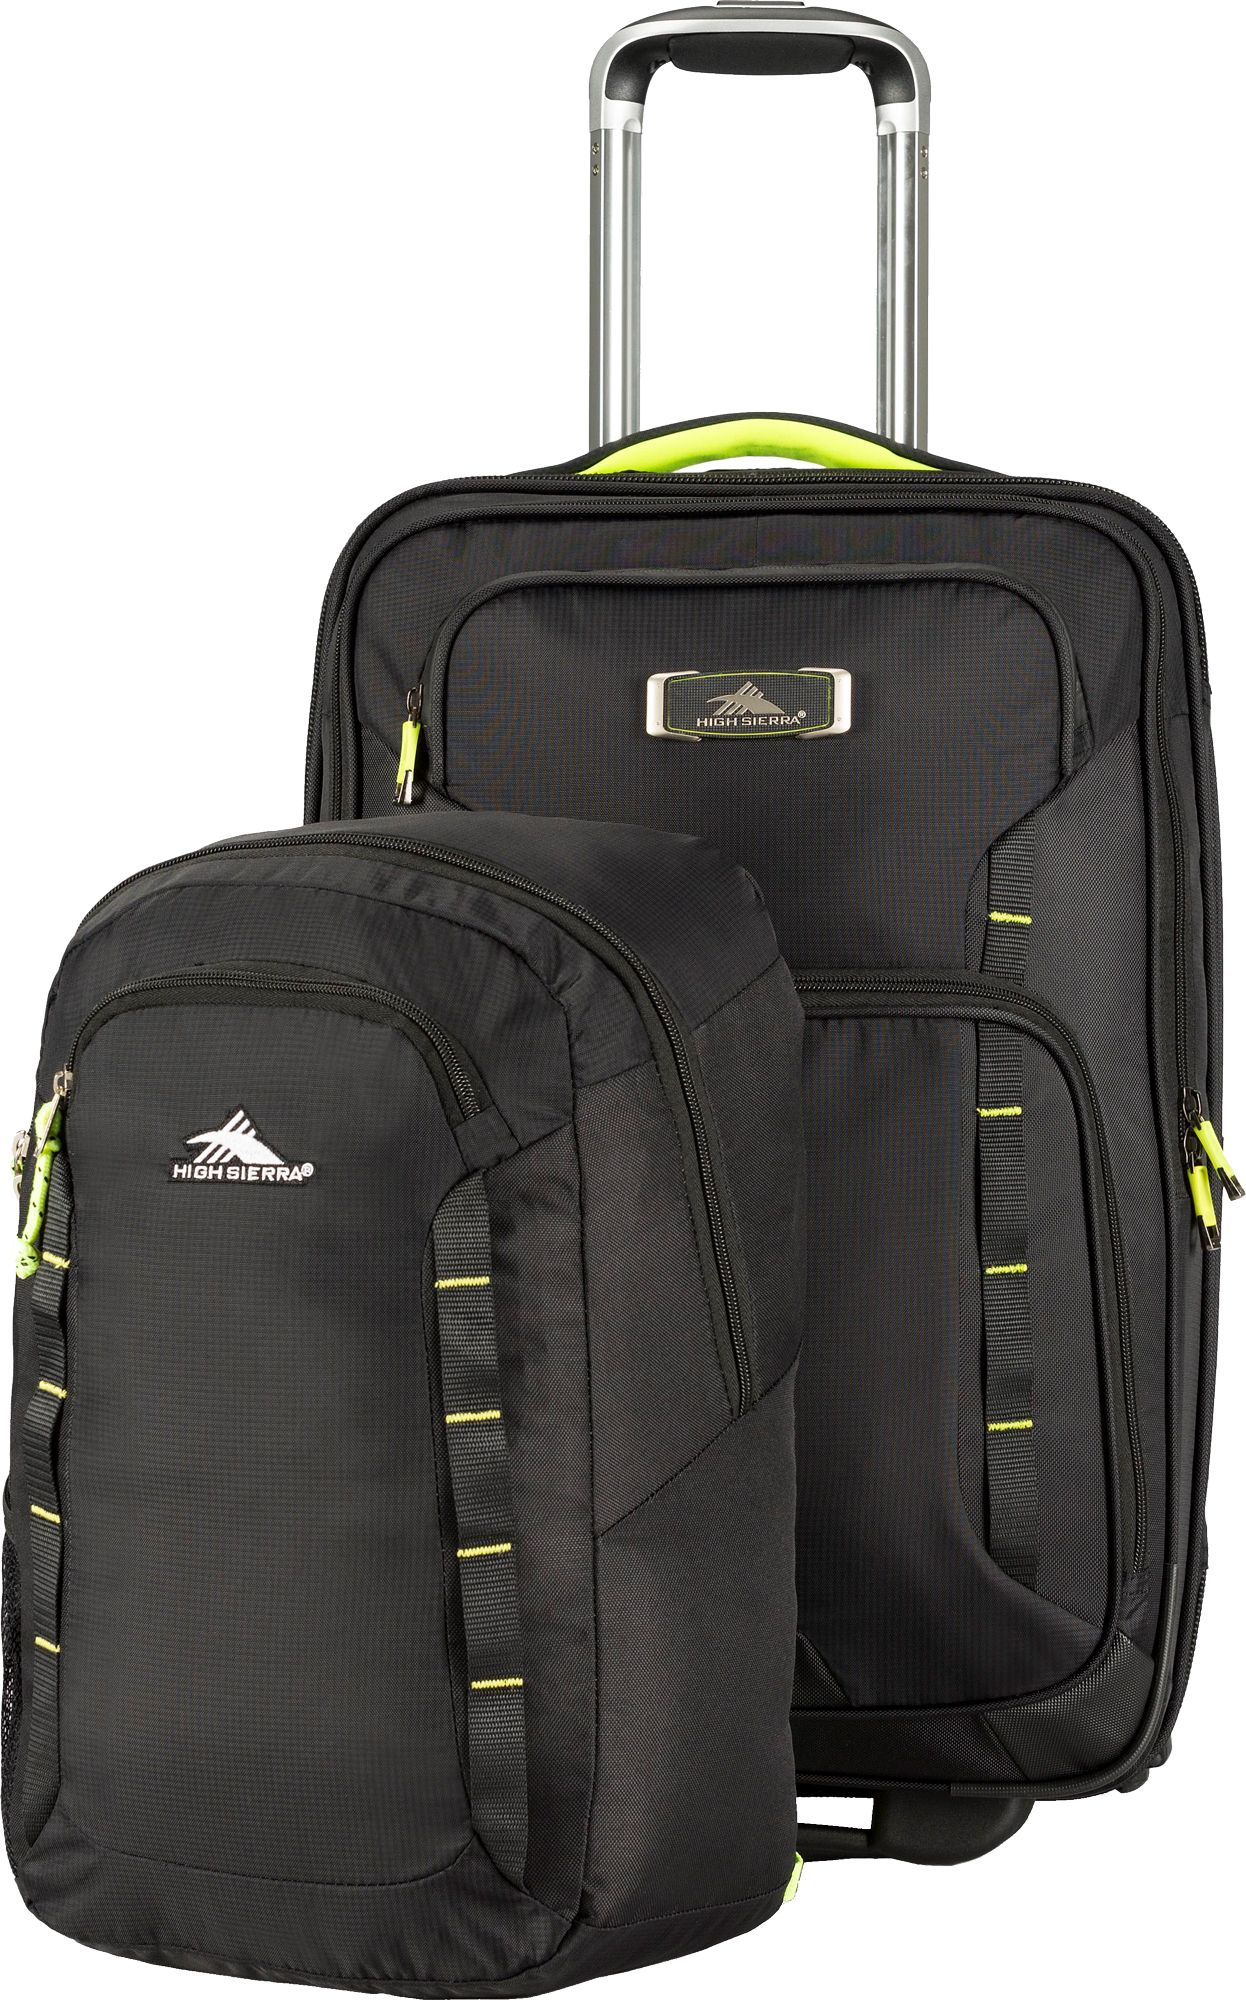 High Sierra AT7 Wheeled Computer Backpack DICKS Sporting Goods